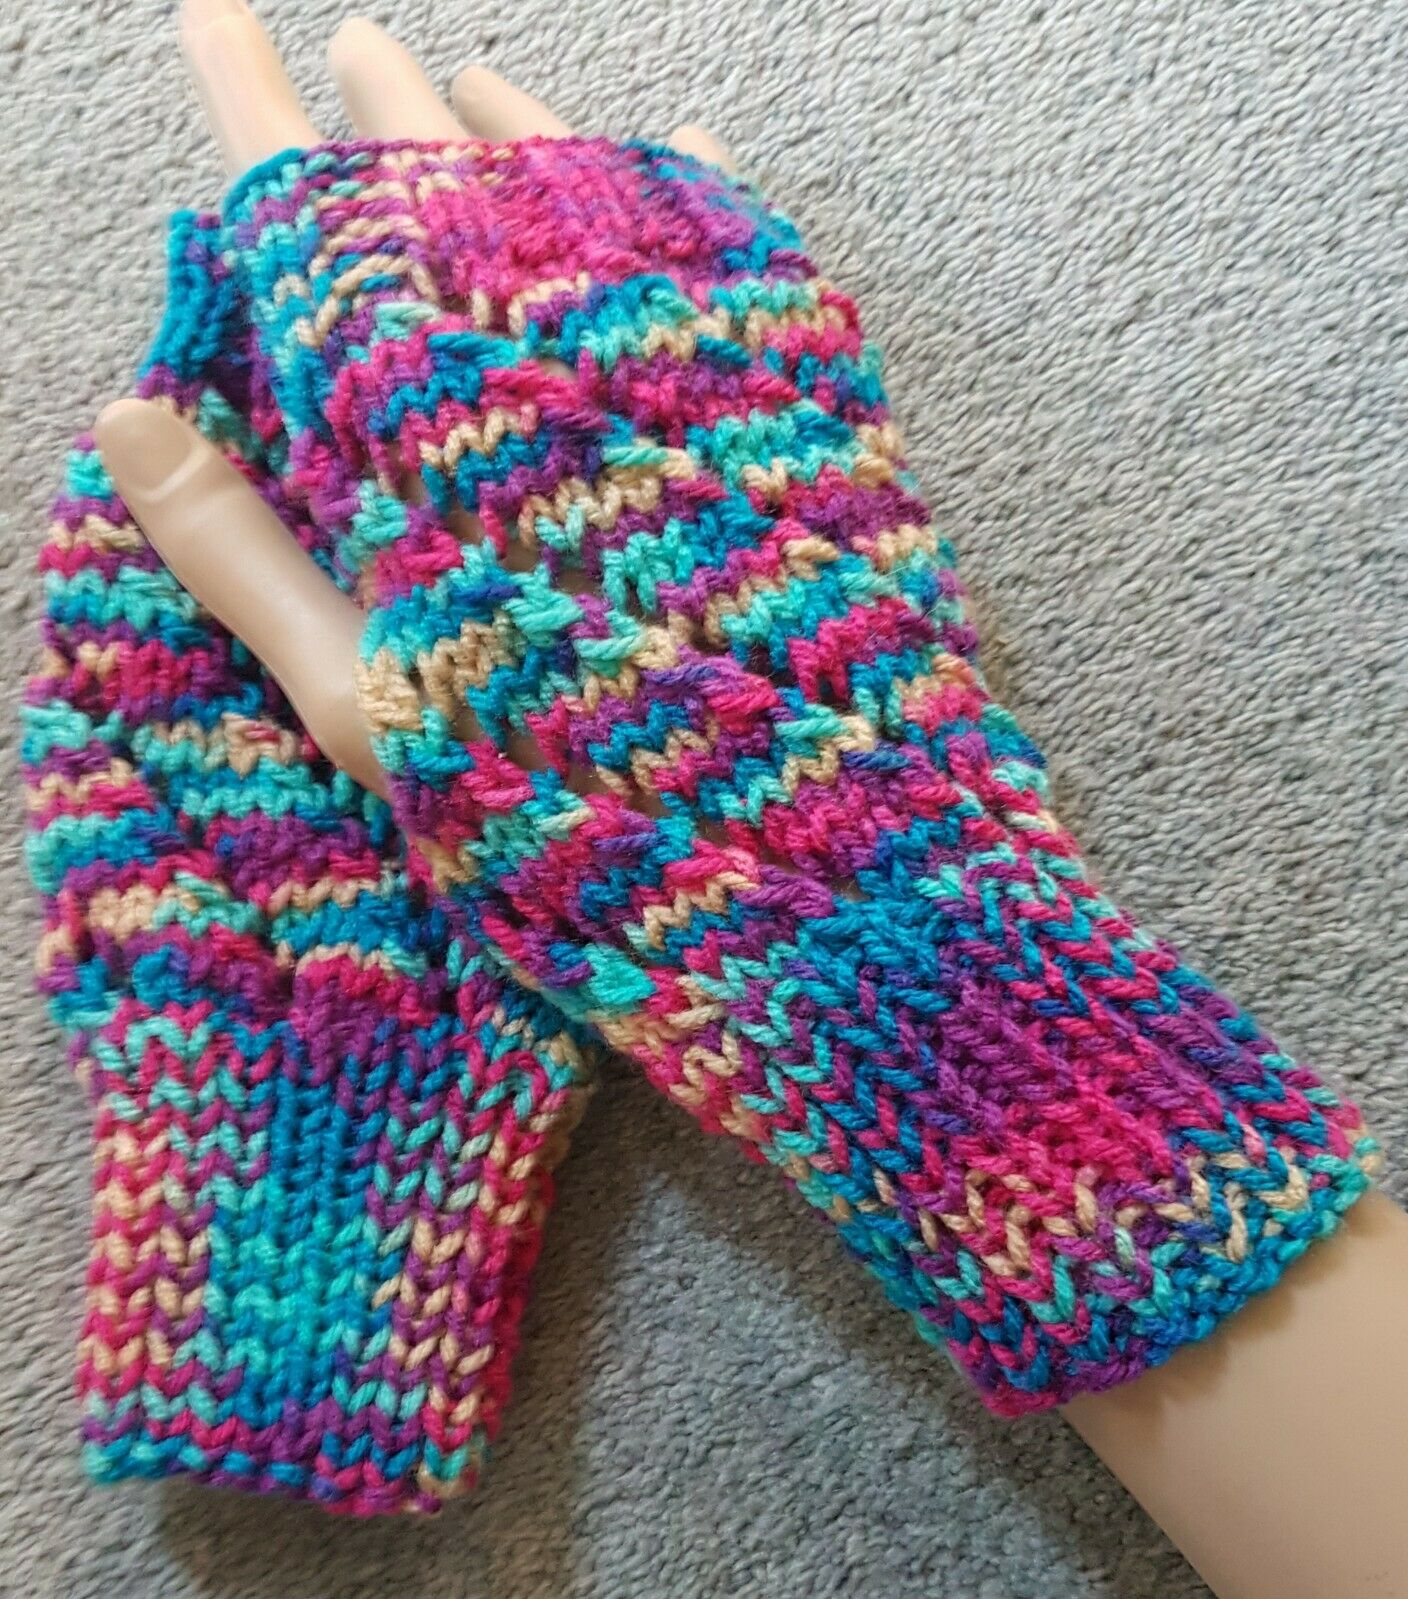 New Hand Knitted Lace Effect Fingerless Gloves/ Wrist Warmers in Bright Colours